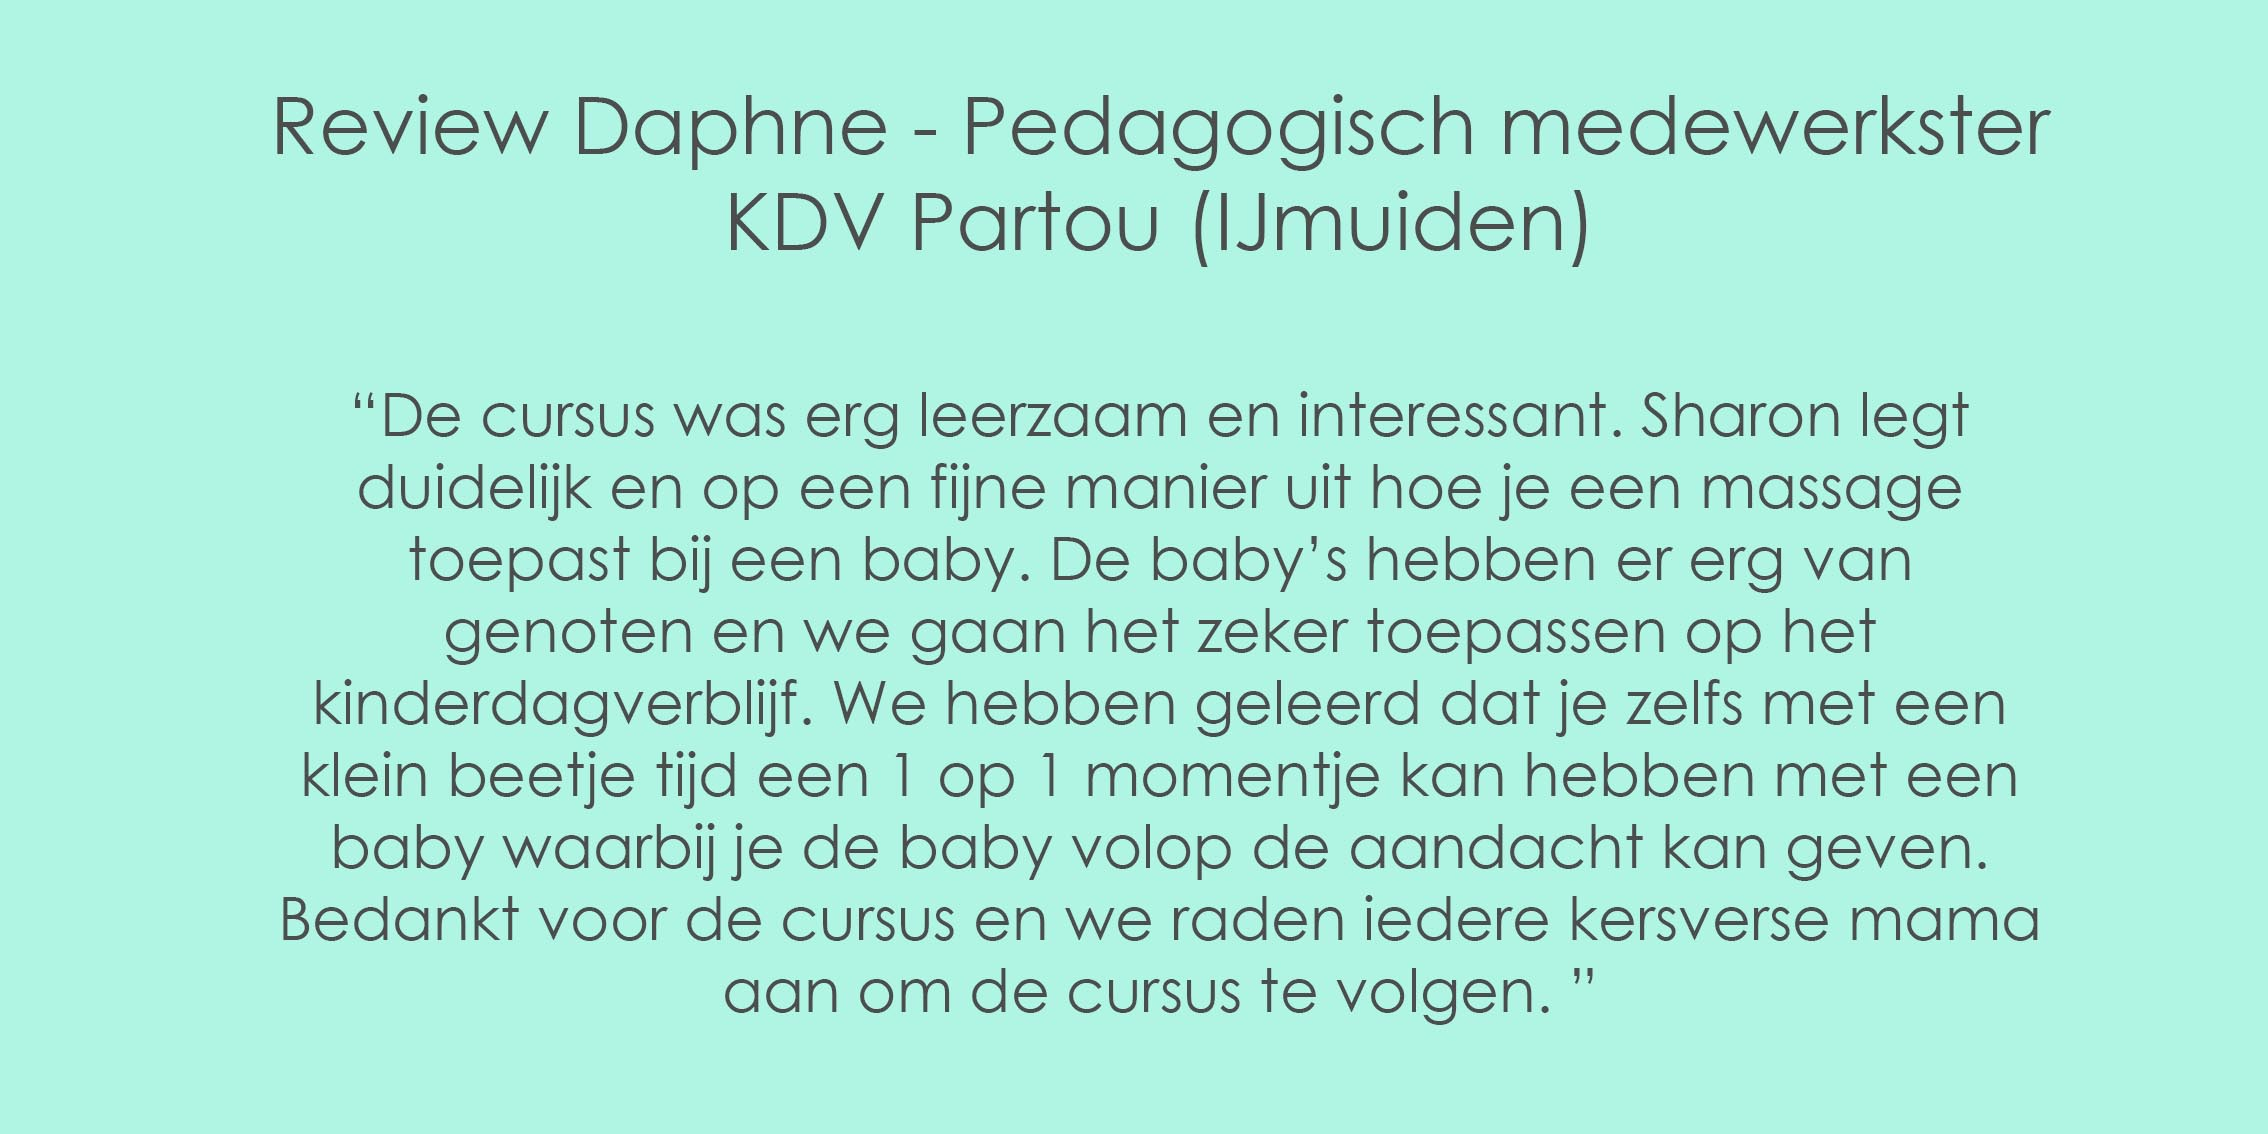 Review KDV Partou groot